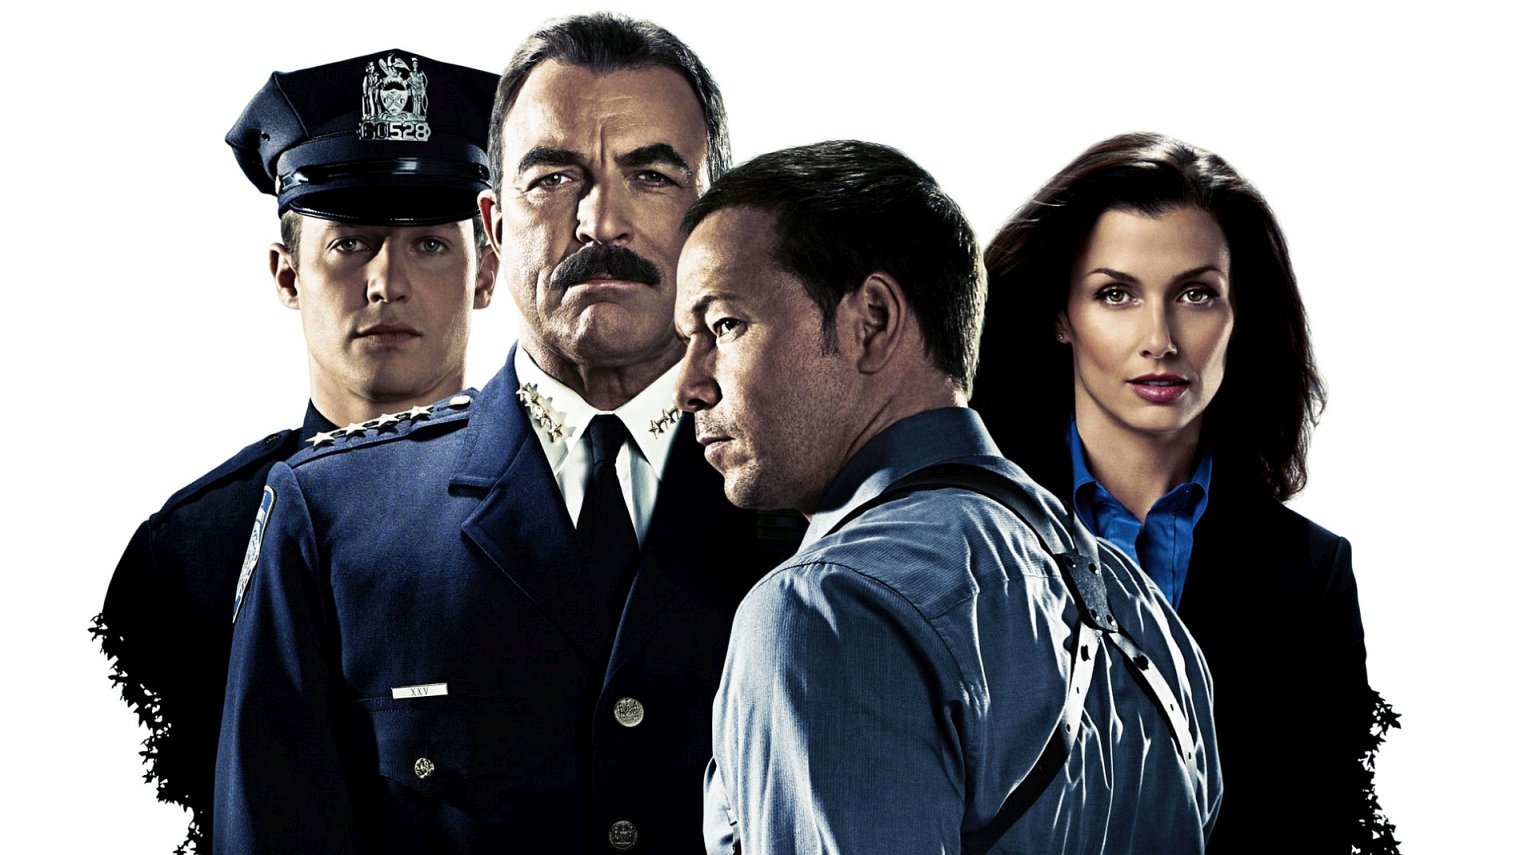 Blue Bloods S9 episode 4 watch online